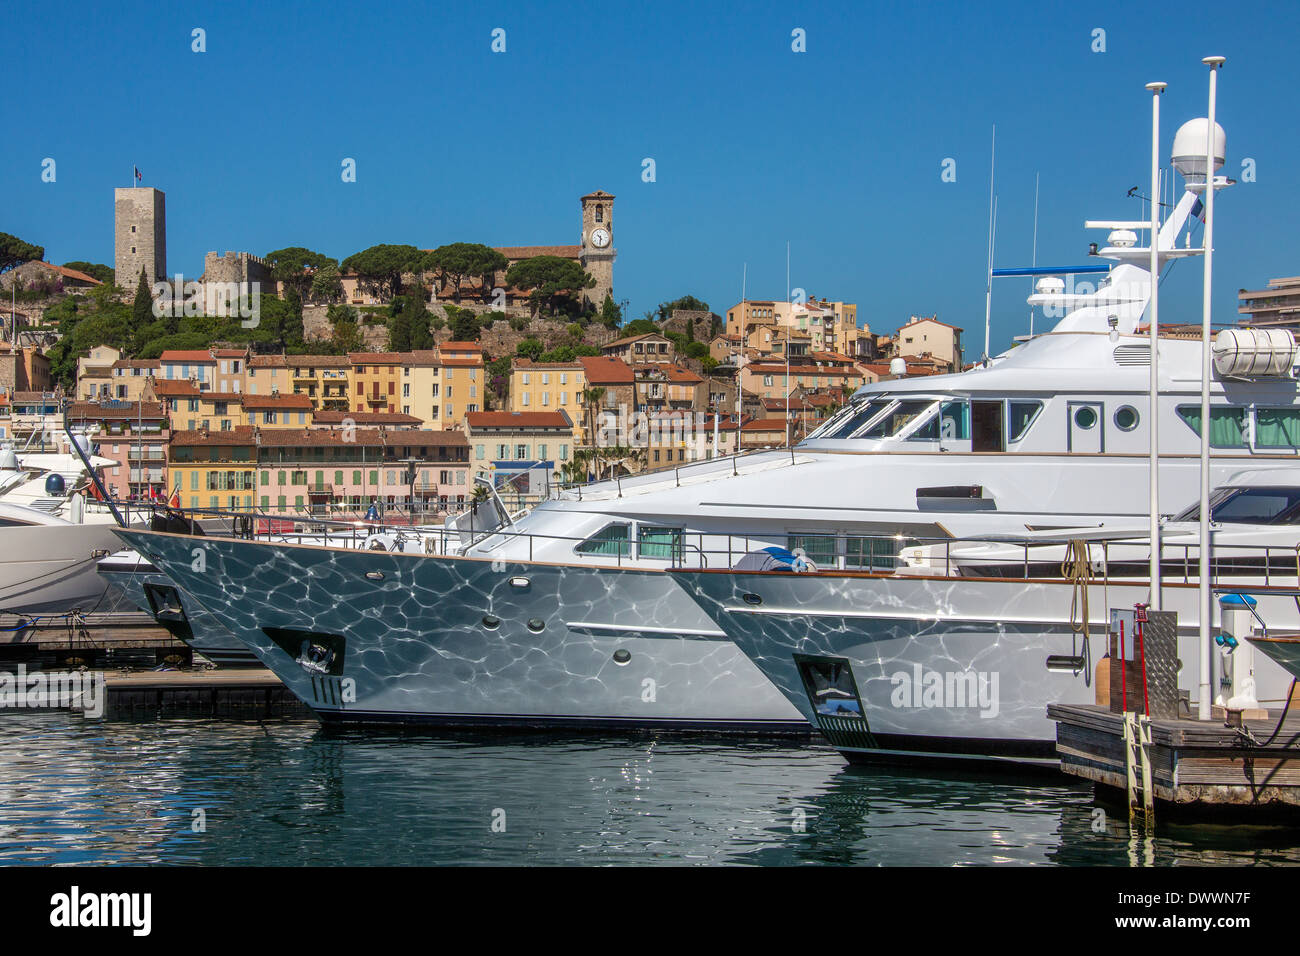 The harbor in Cannes old town on the Cote d'Azur in the South of France. - Stock Image